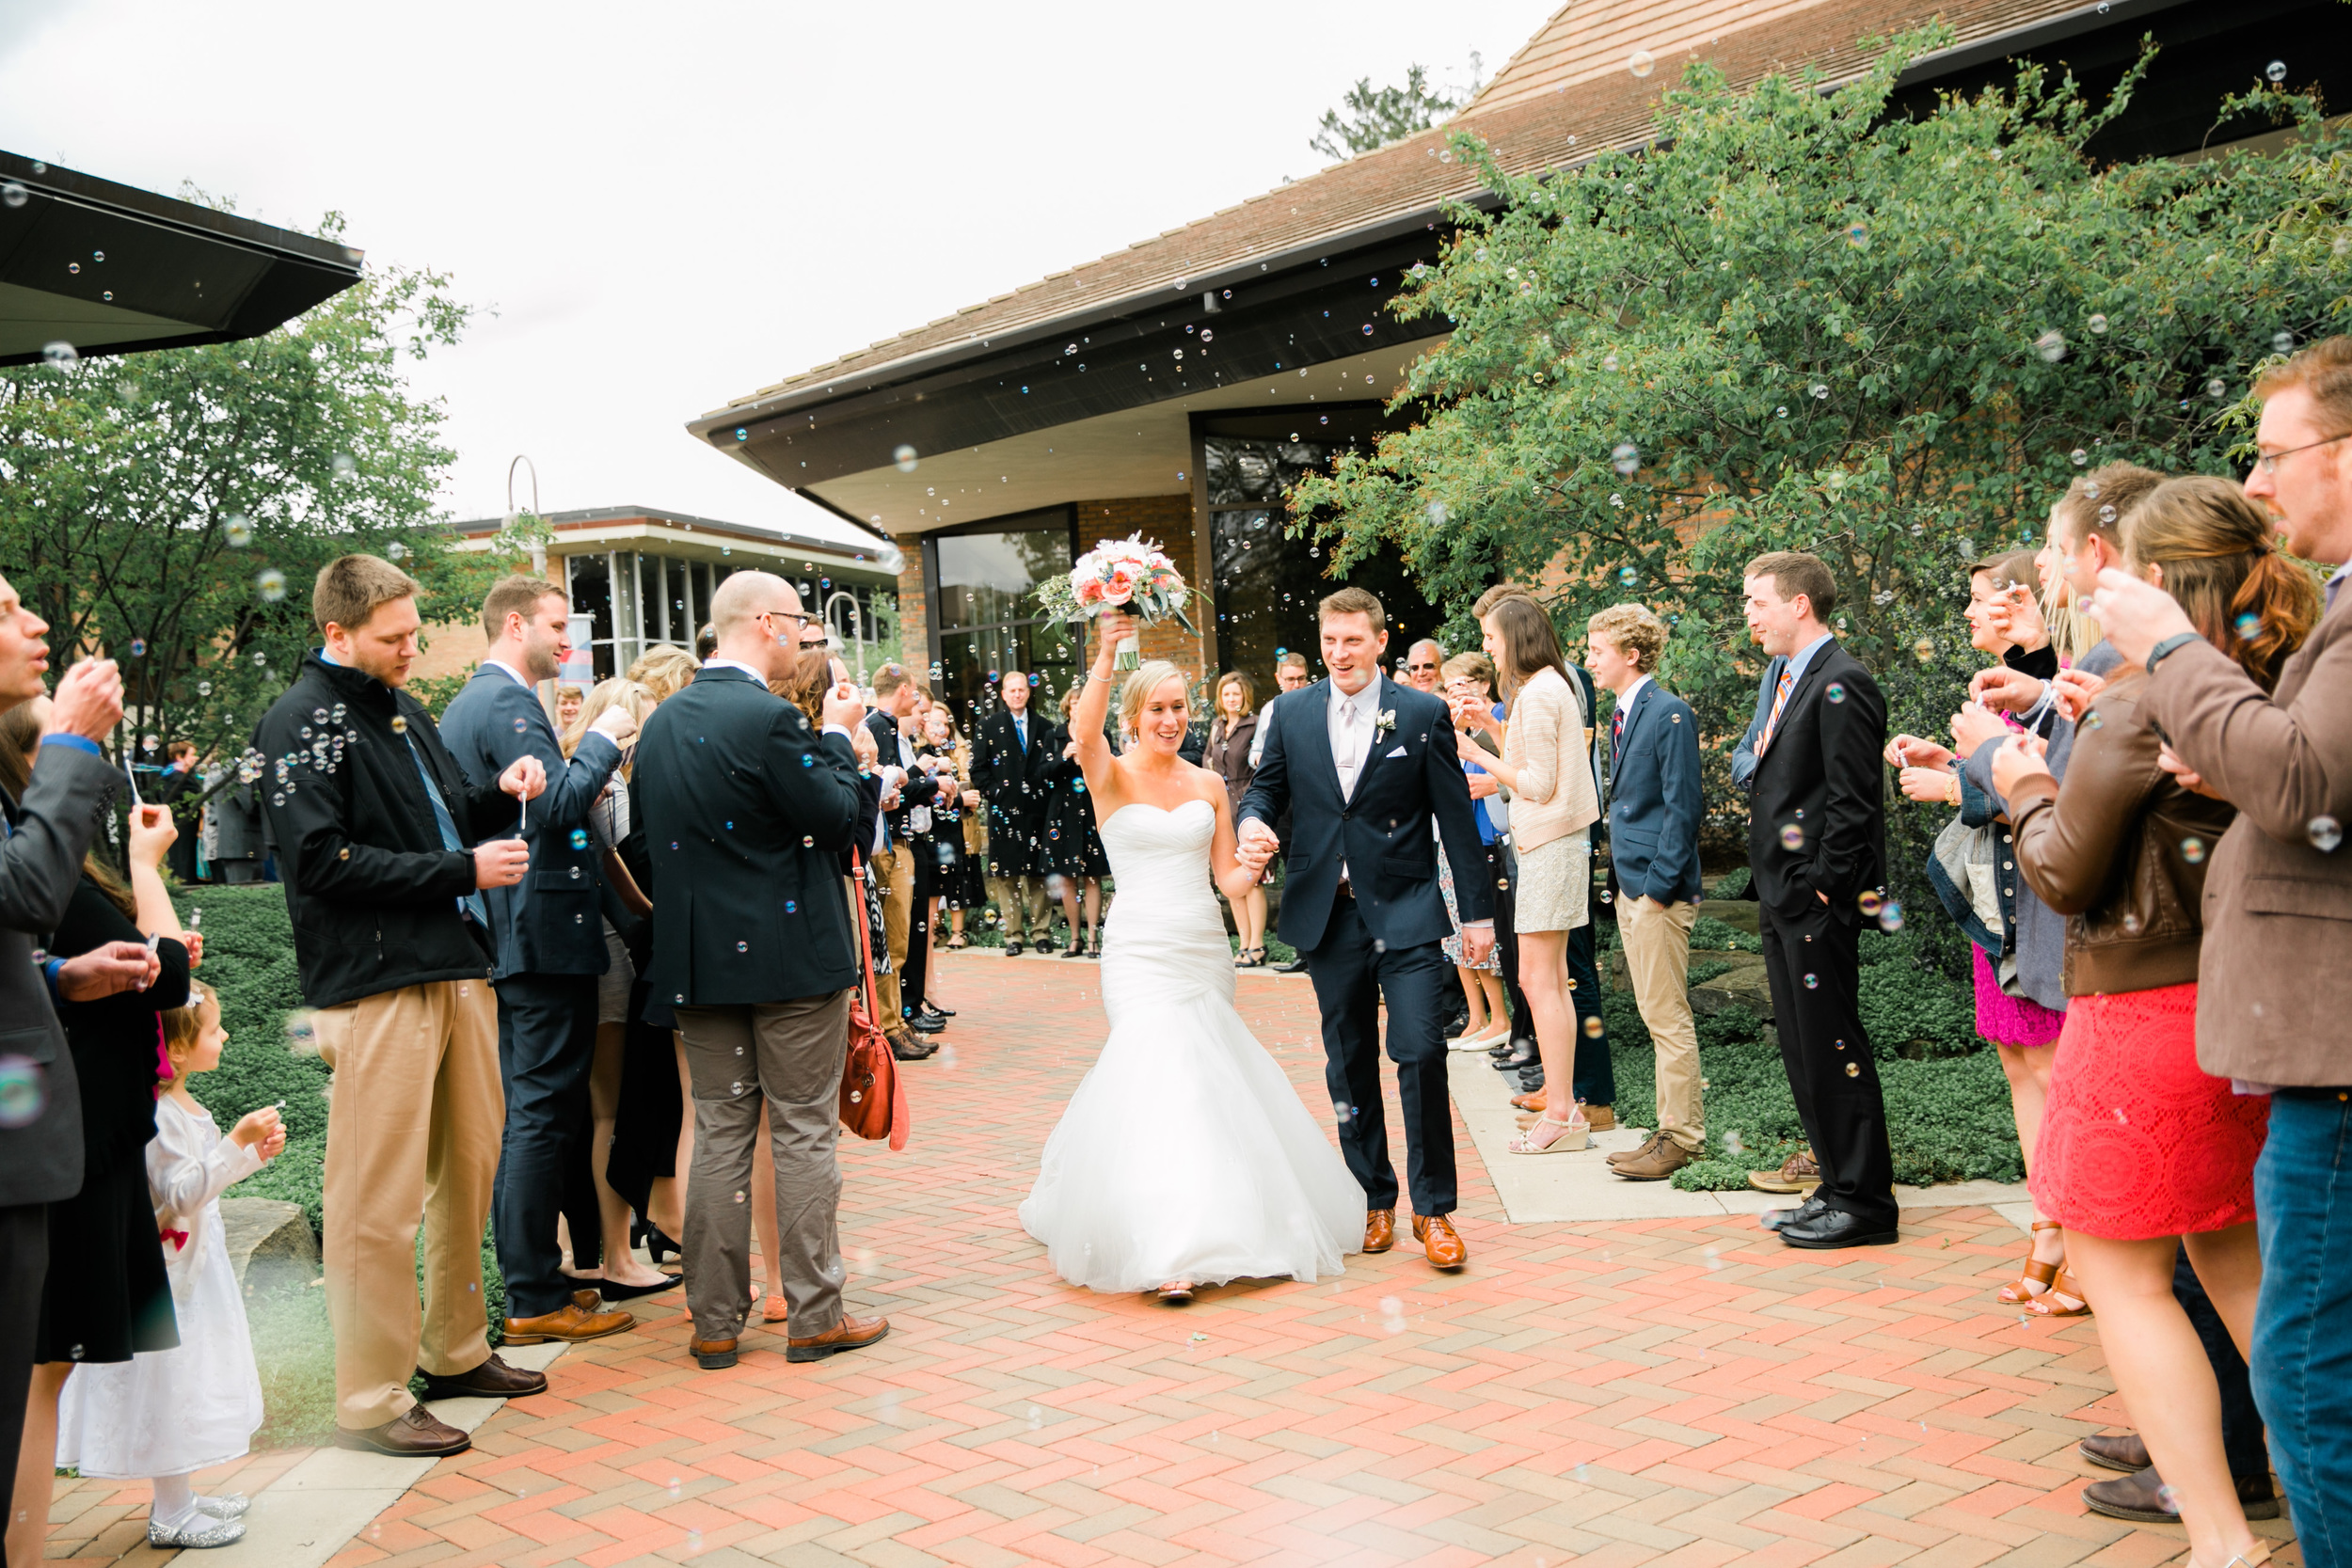 mayden photography weddings-27.jpg